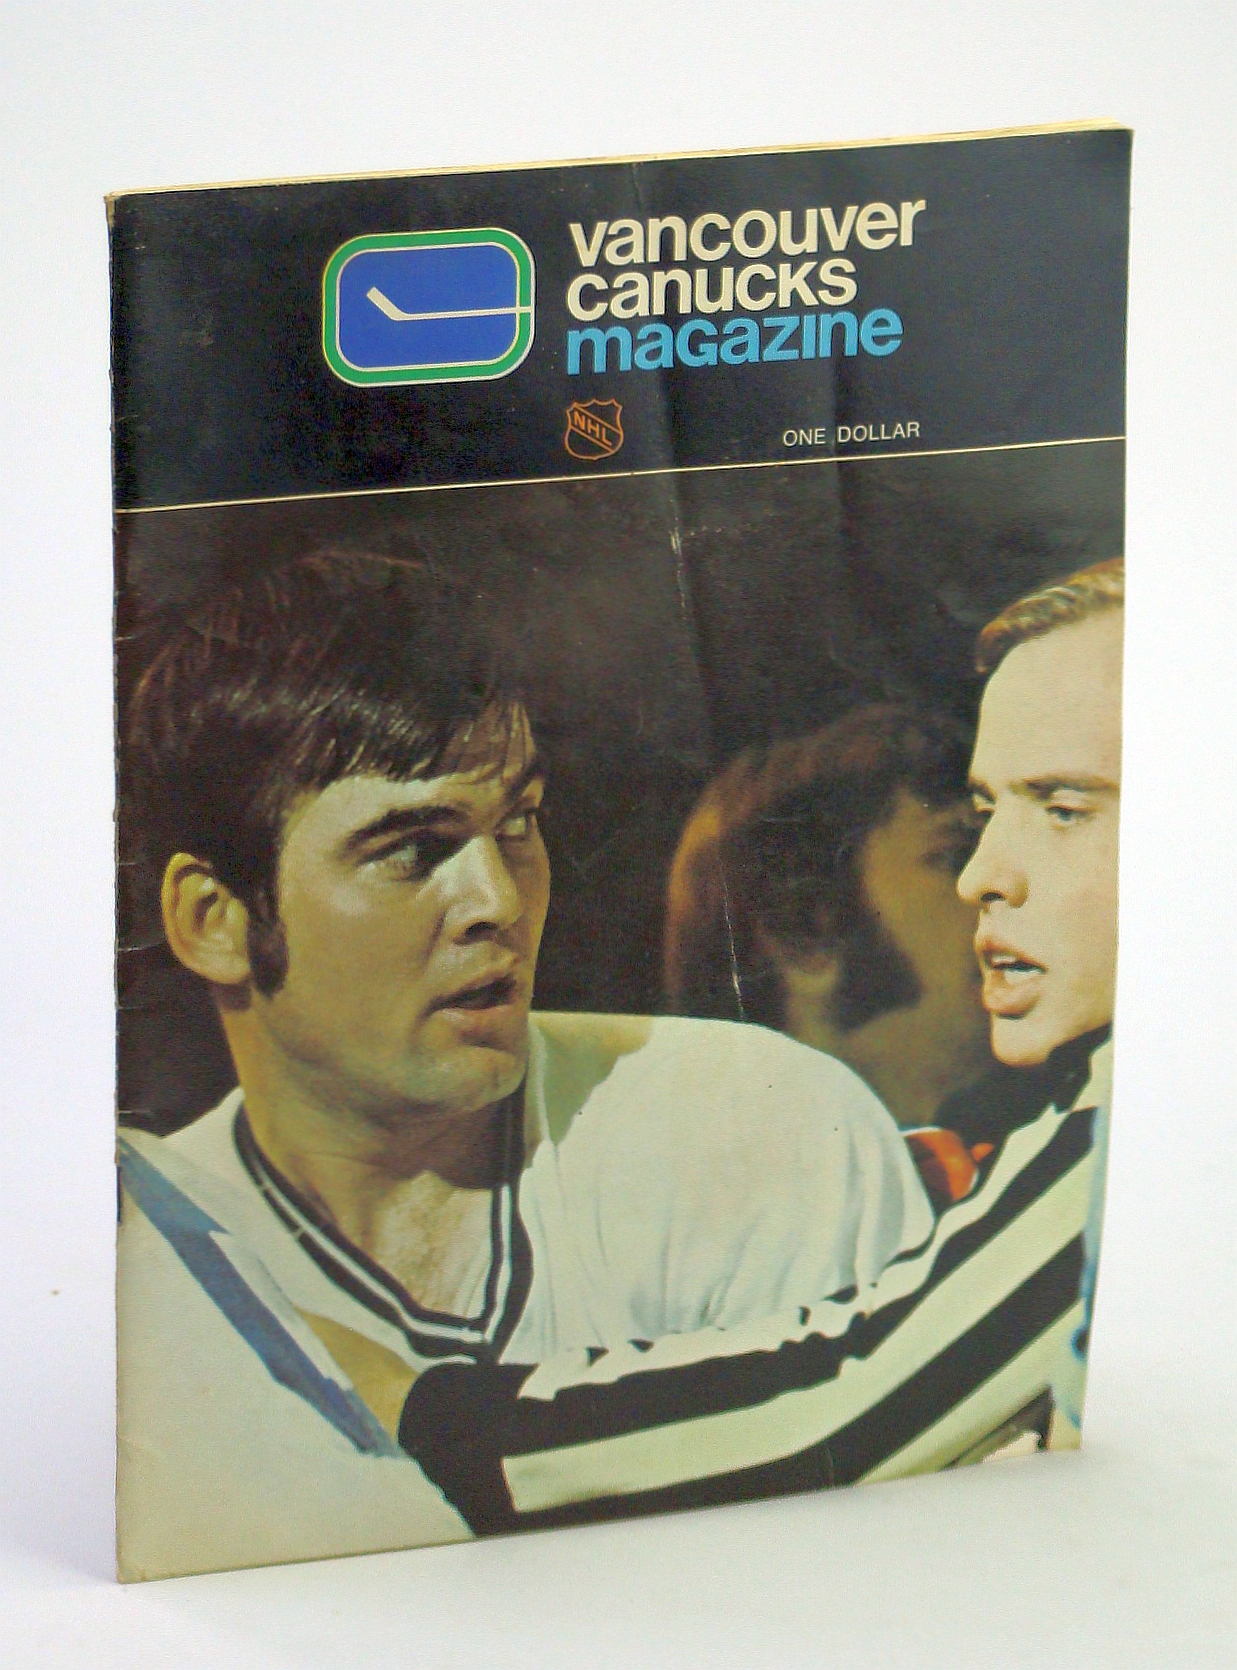 Image for Canucks - Vancouver Canuck Magazine, January 22, 1972, Vol. 2, No. 26 - Cover Photo of Rosaire Paiement in Fight Mode